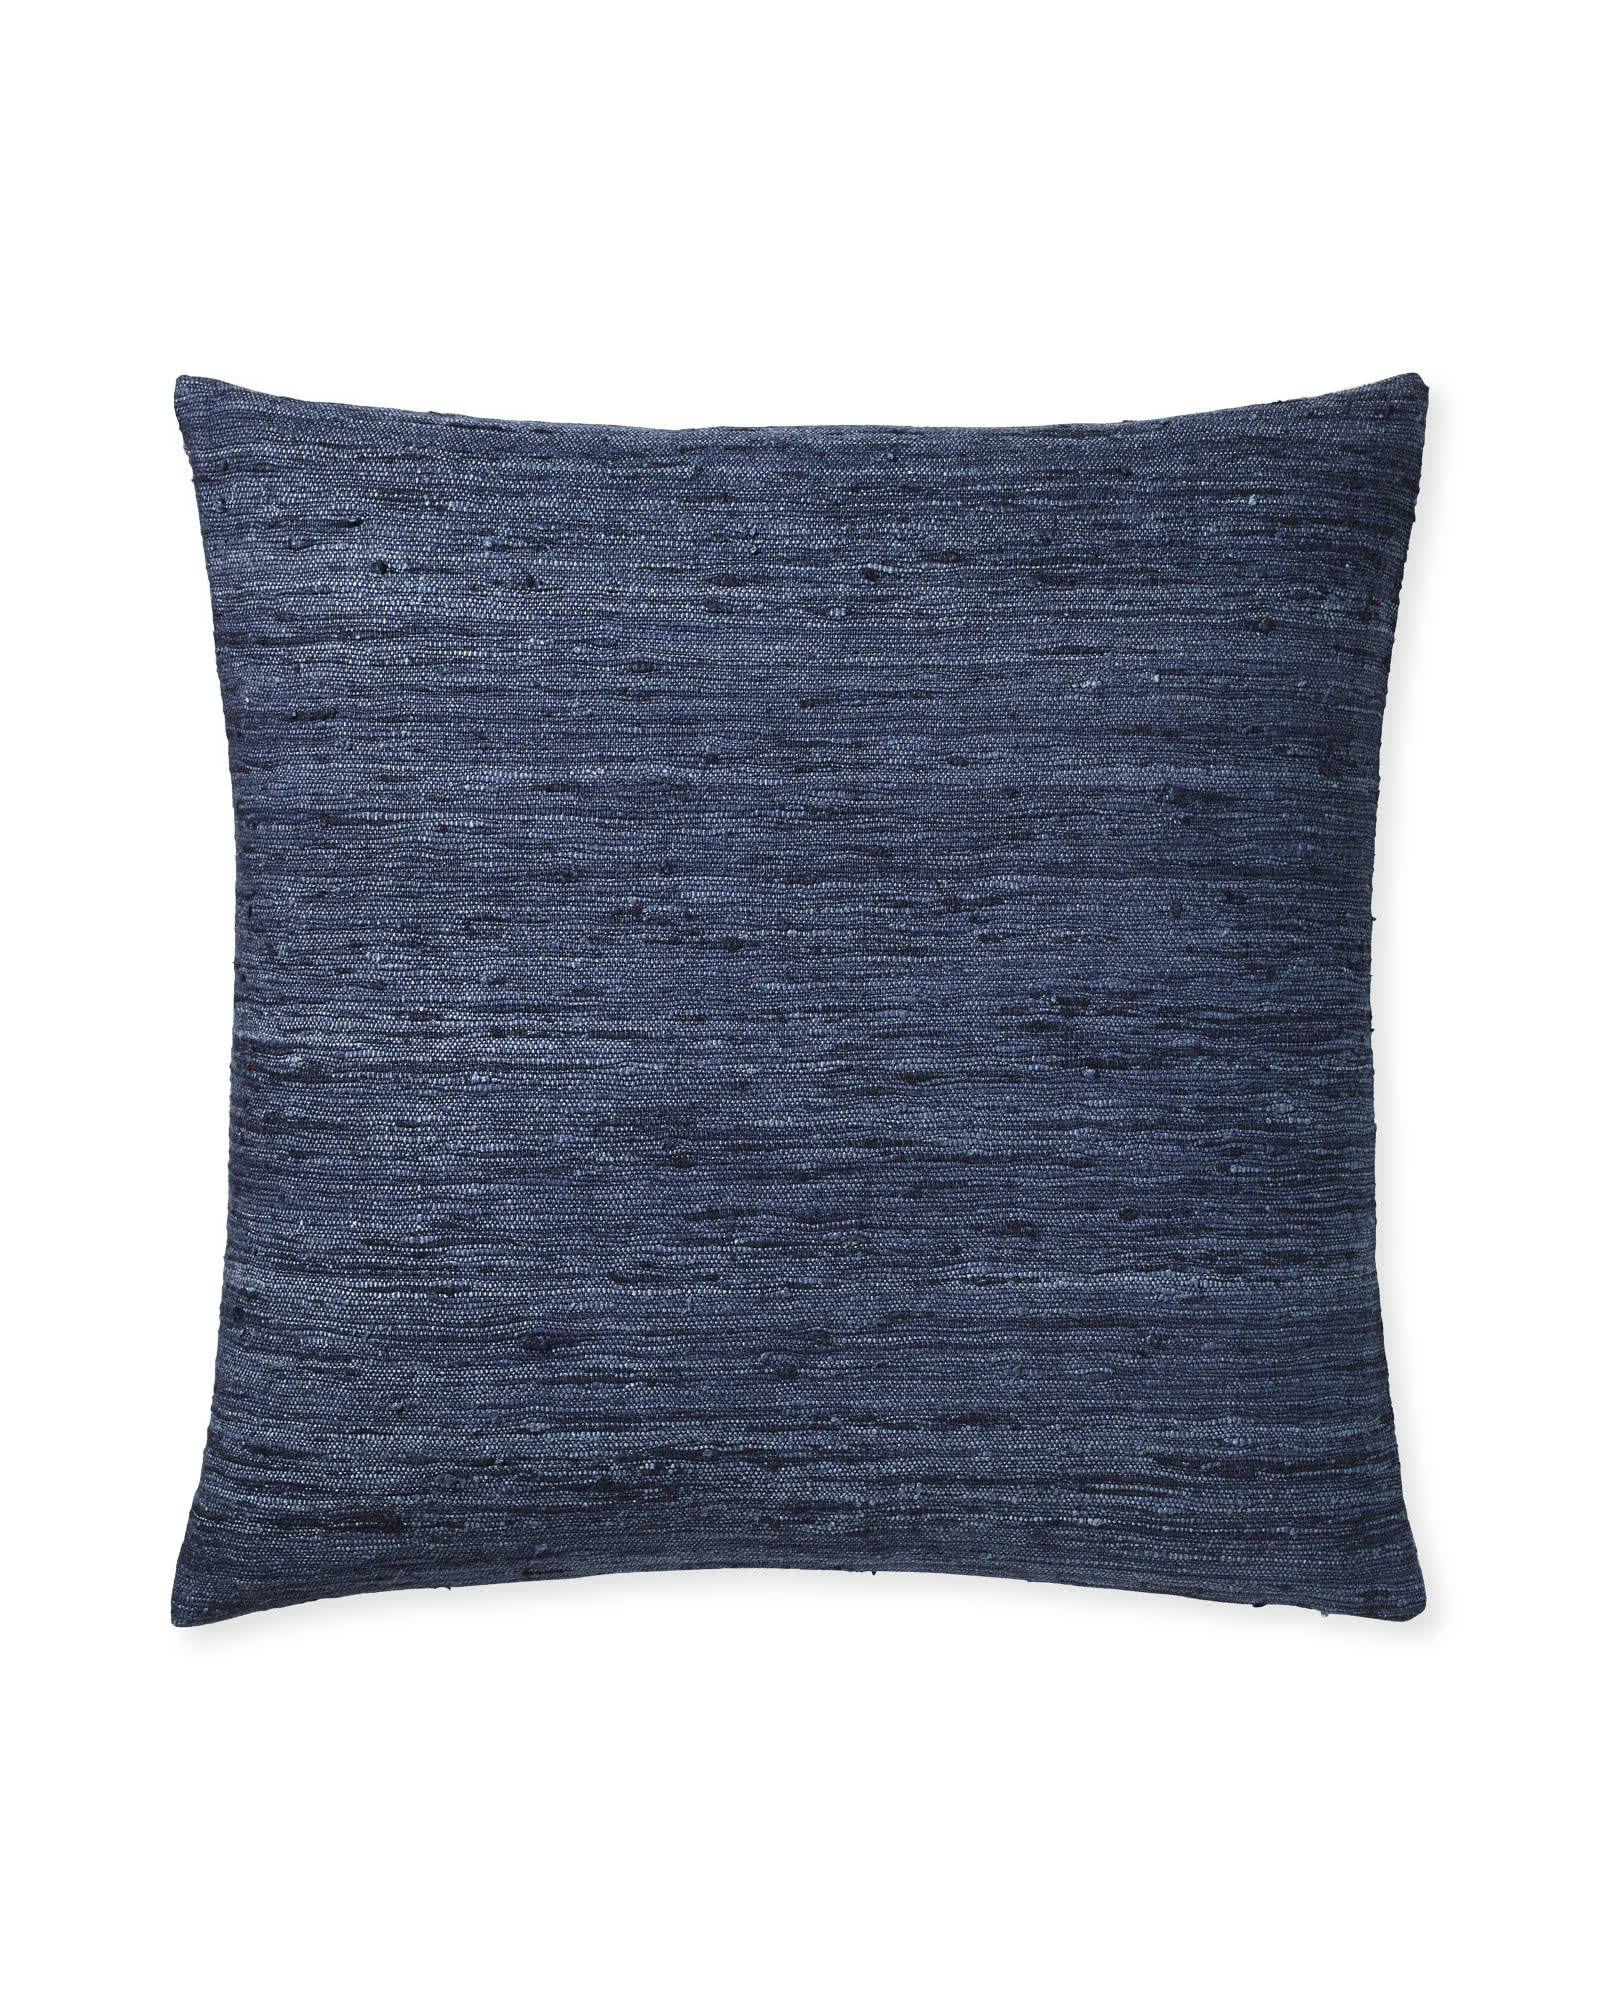 Provence Pillow Cover, Navy